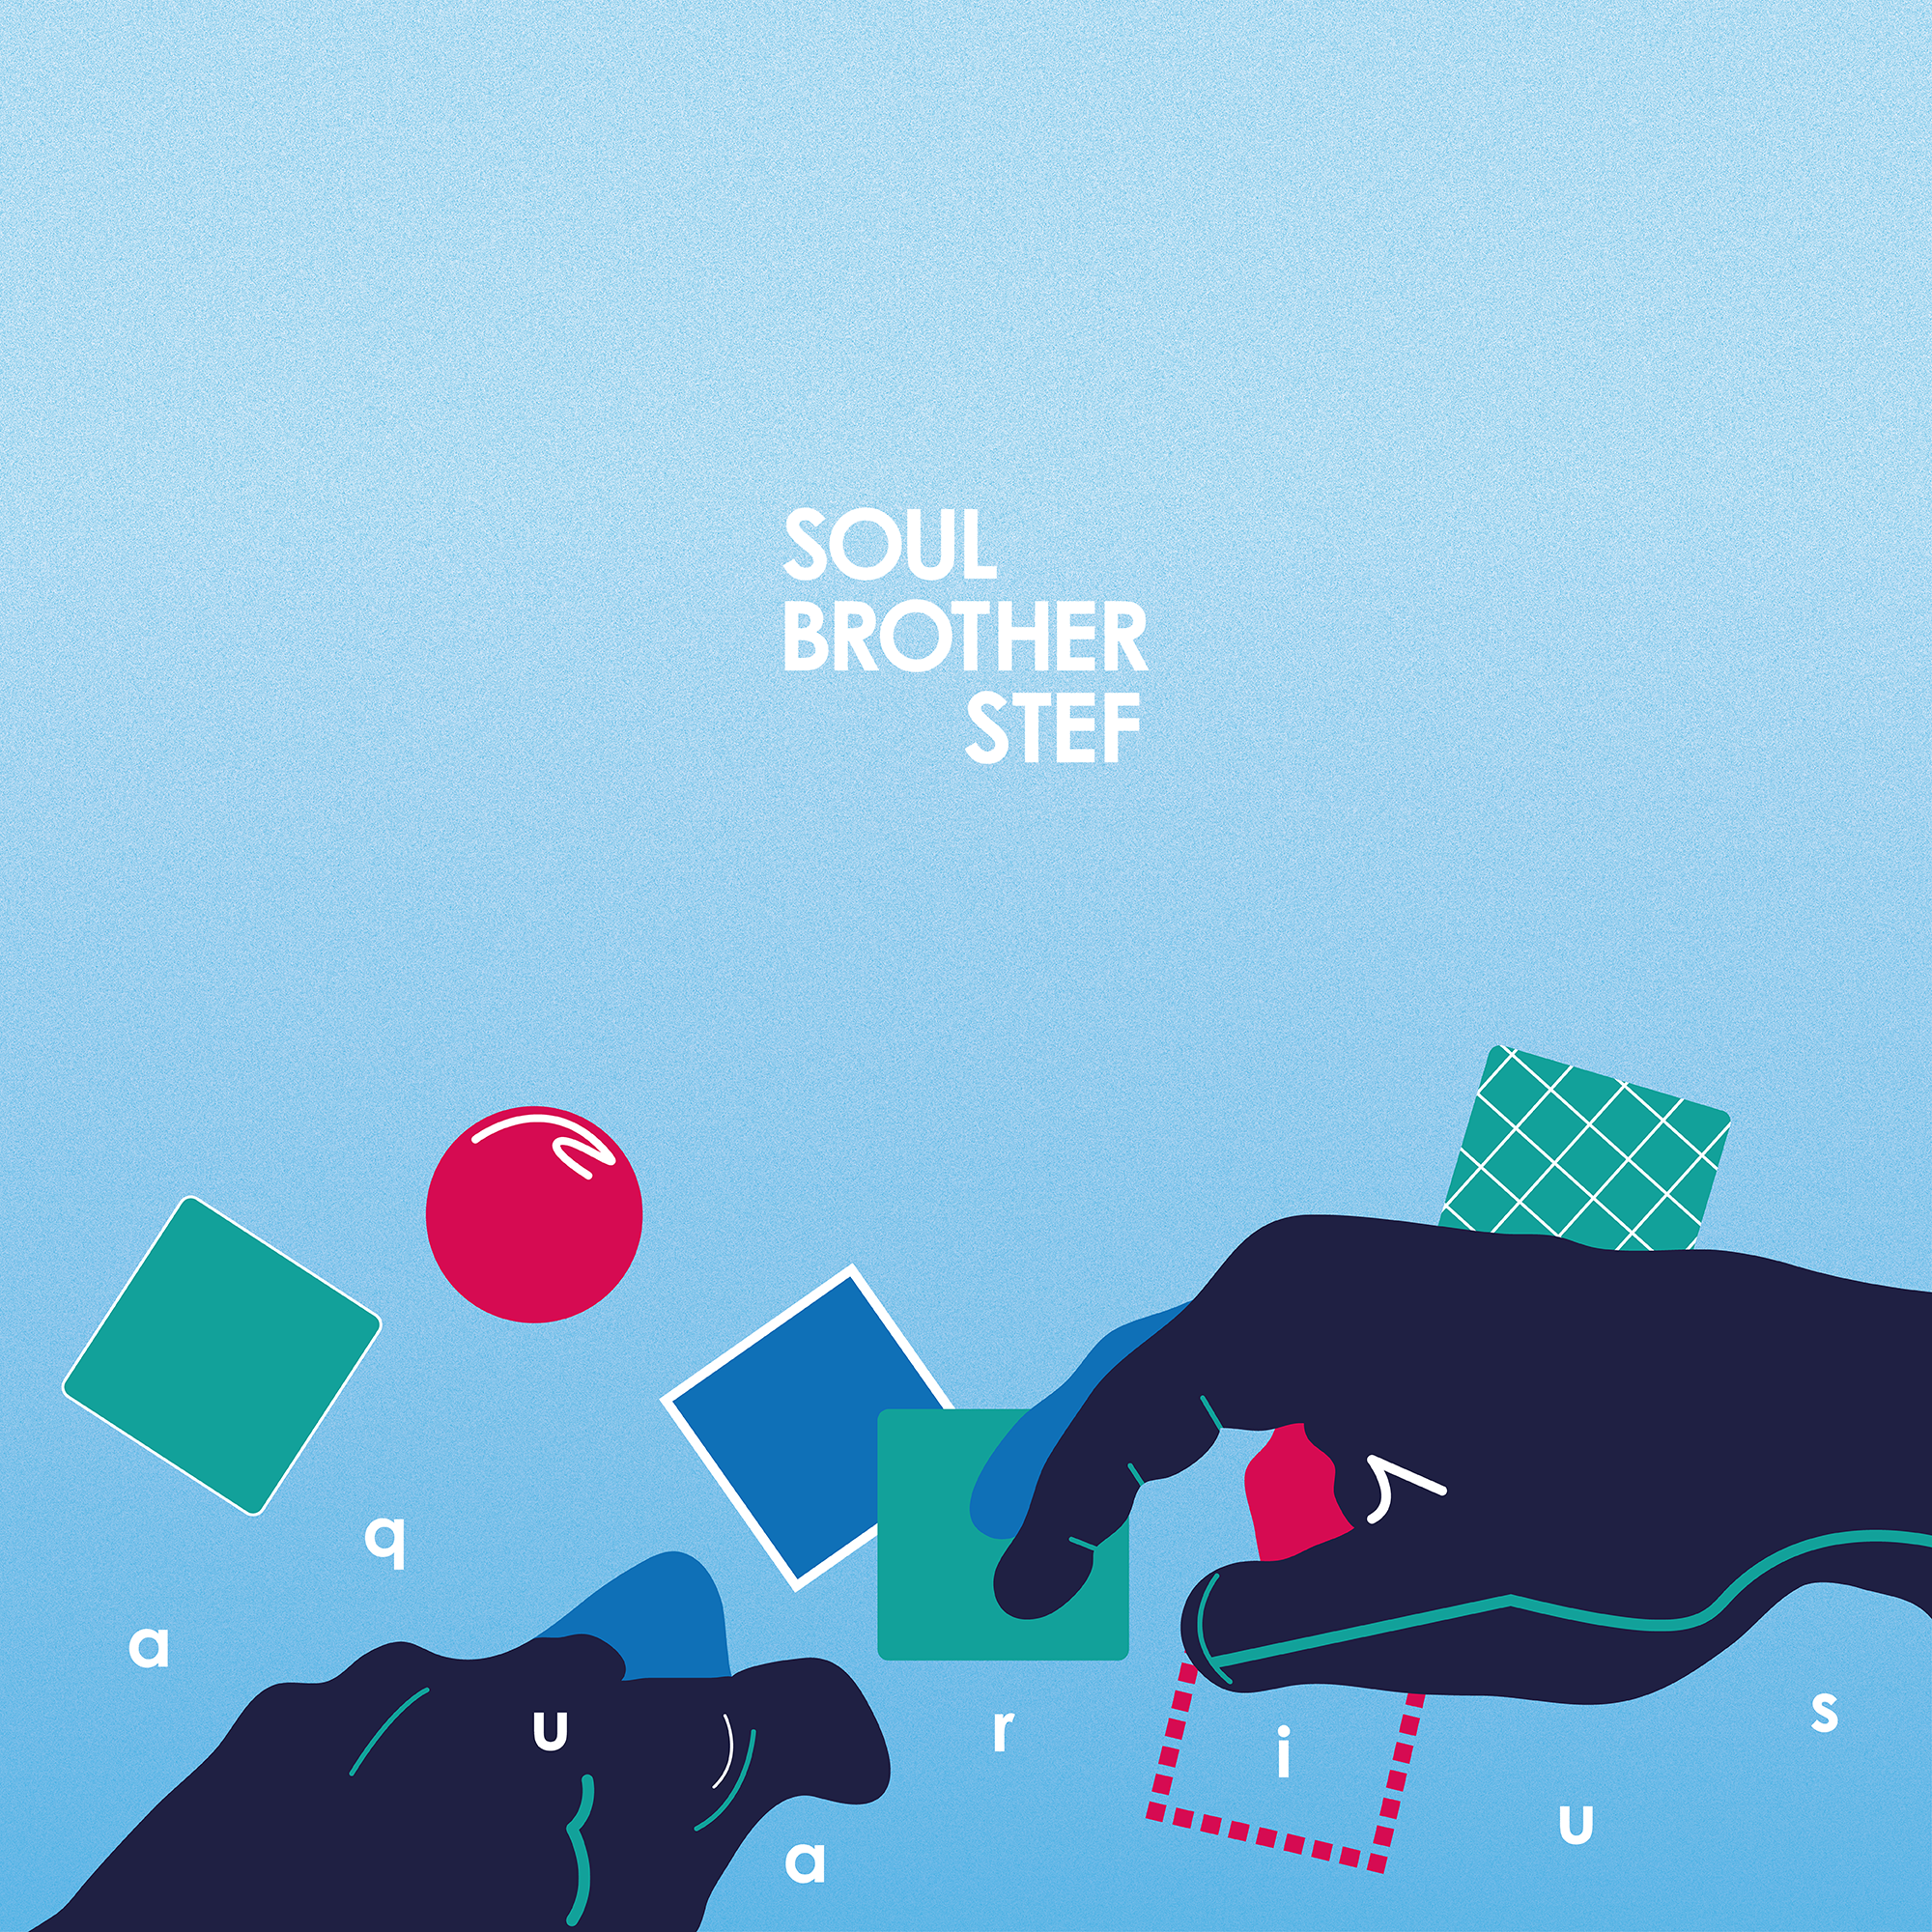 soul-brother-stef-lp-album-artwork-maschine-native-instruments